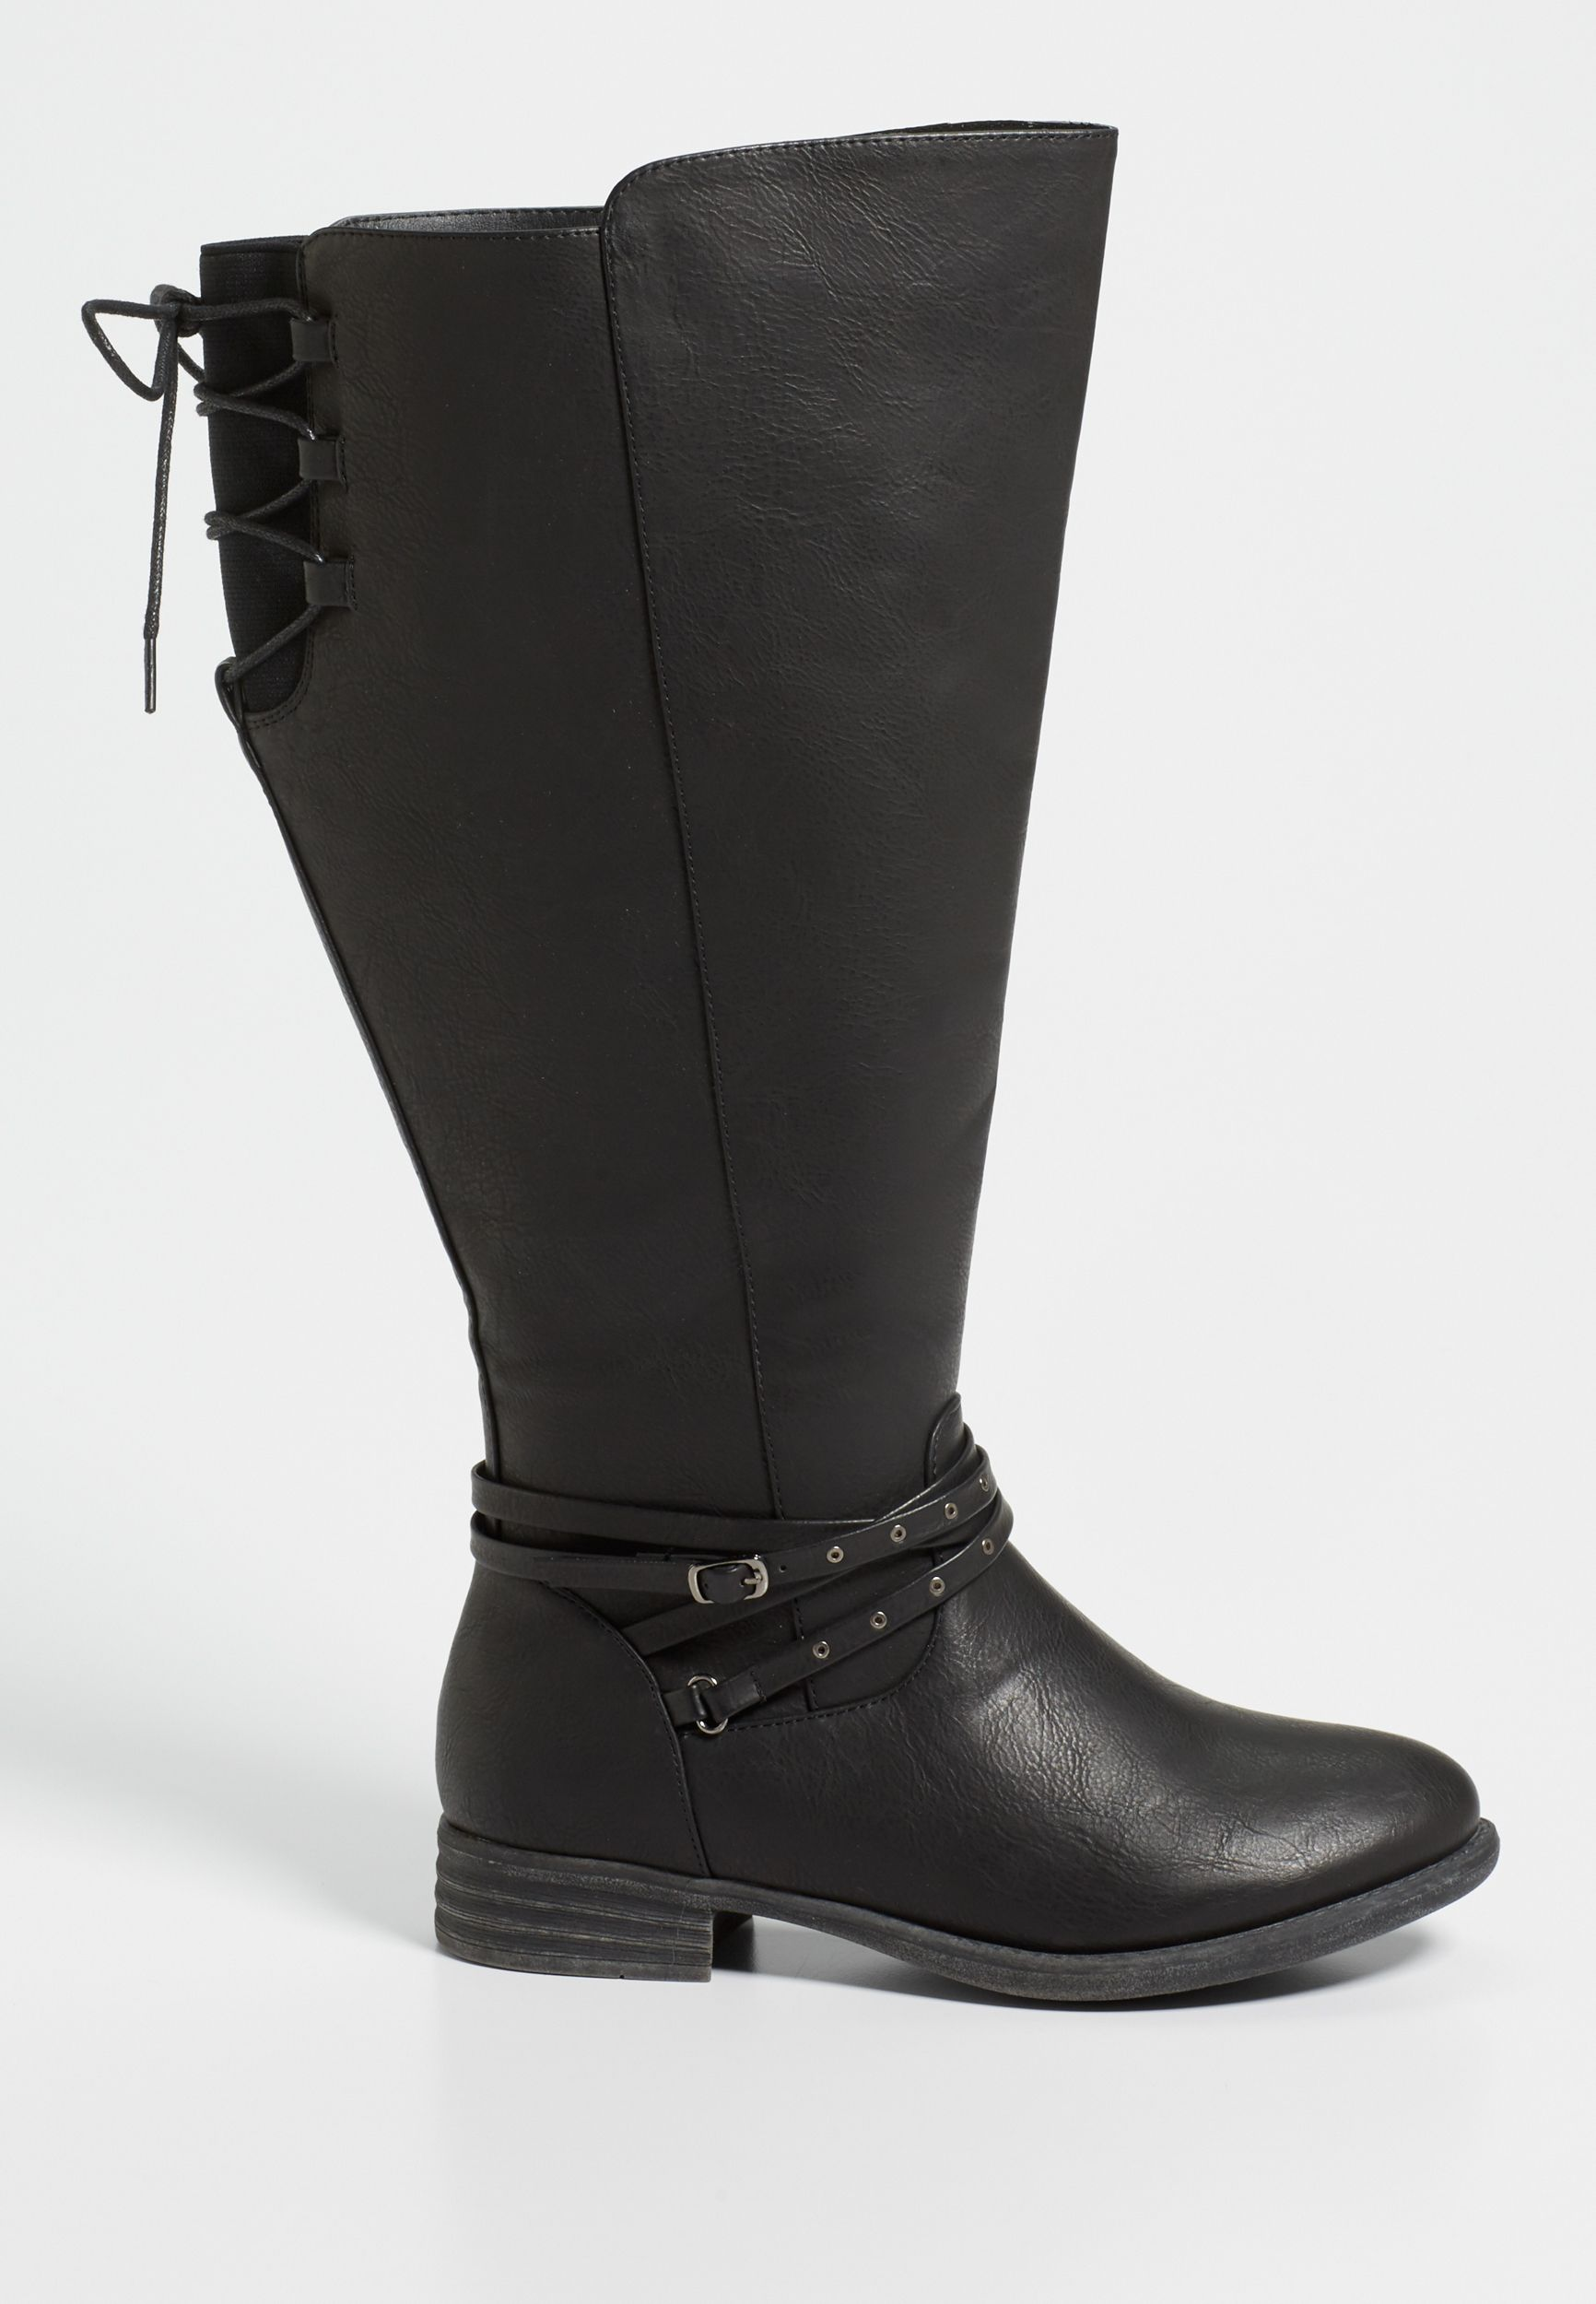 73ab3ac75c4 Shauna extra wide calf boot with lace up detail in black in 2019 ...